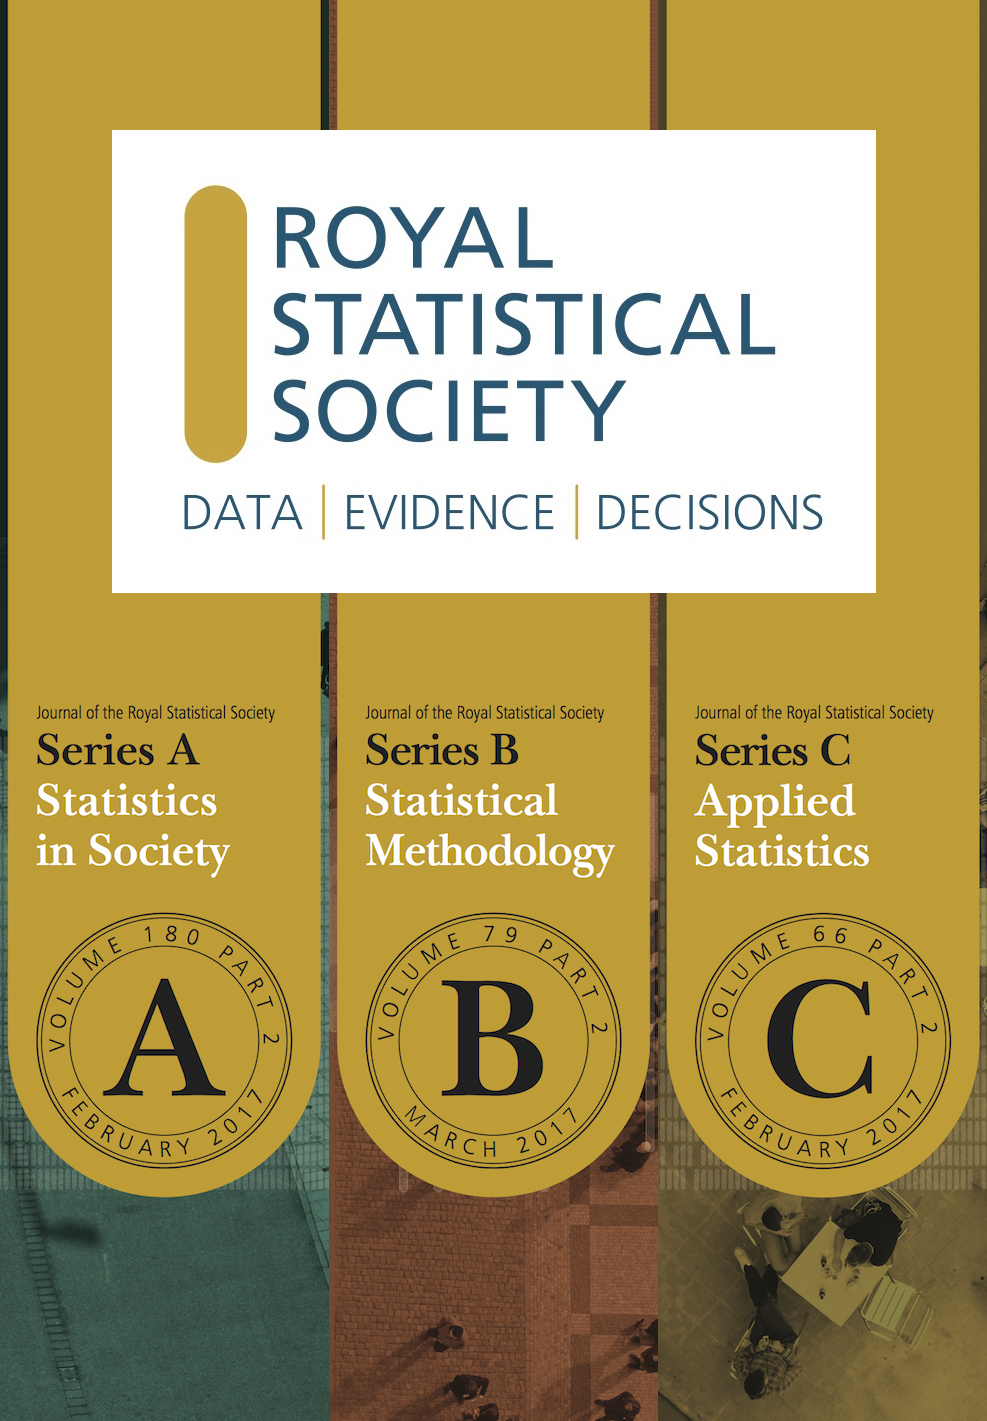 Template for submissions to Journal of the Royal Statistical Society: Series A, Series B, and Series C